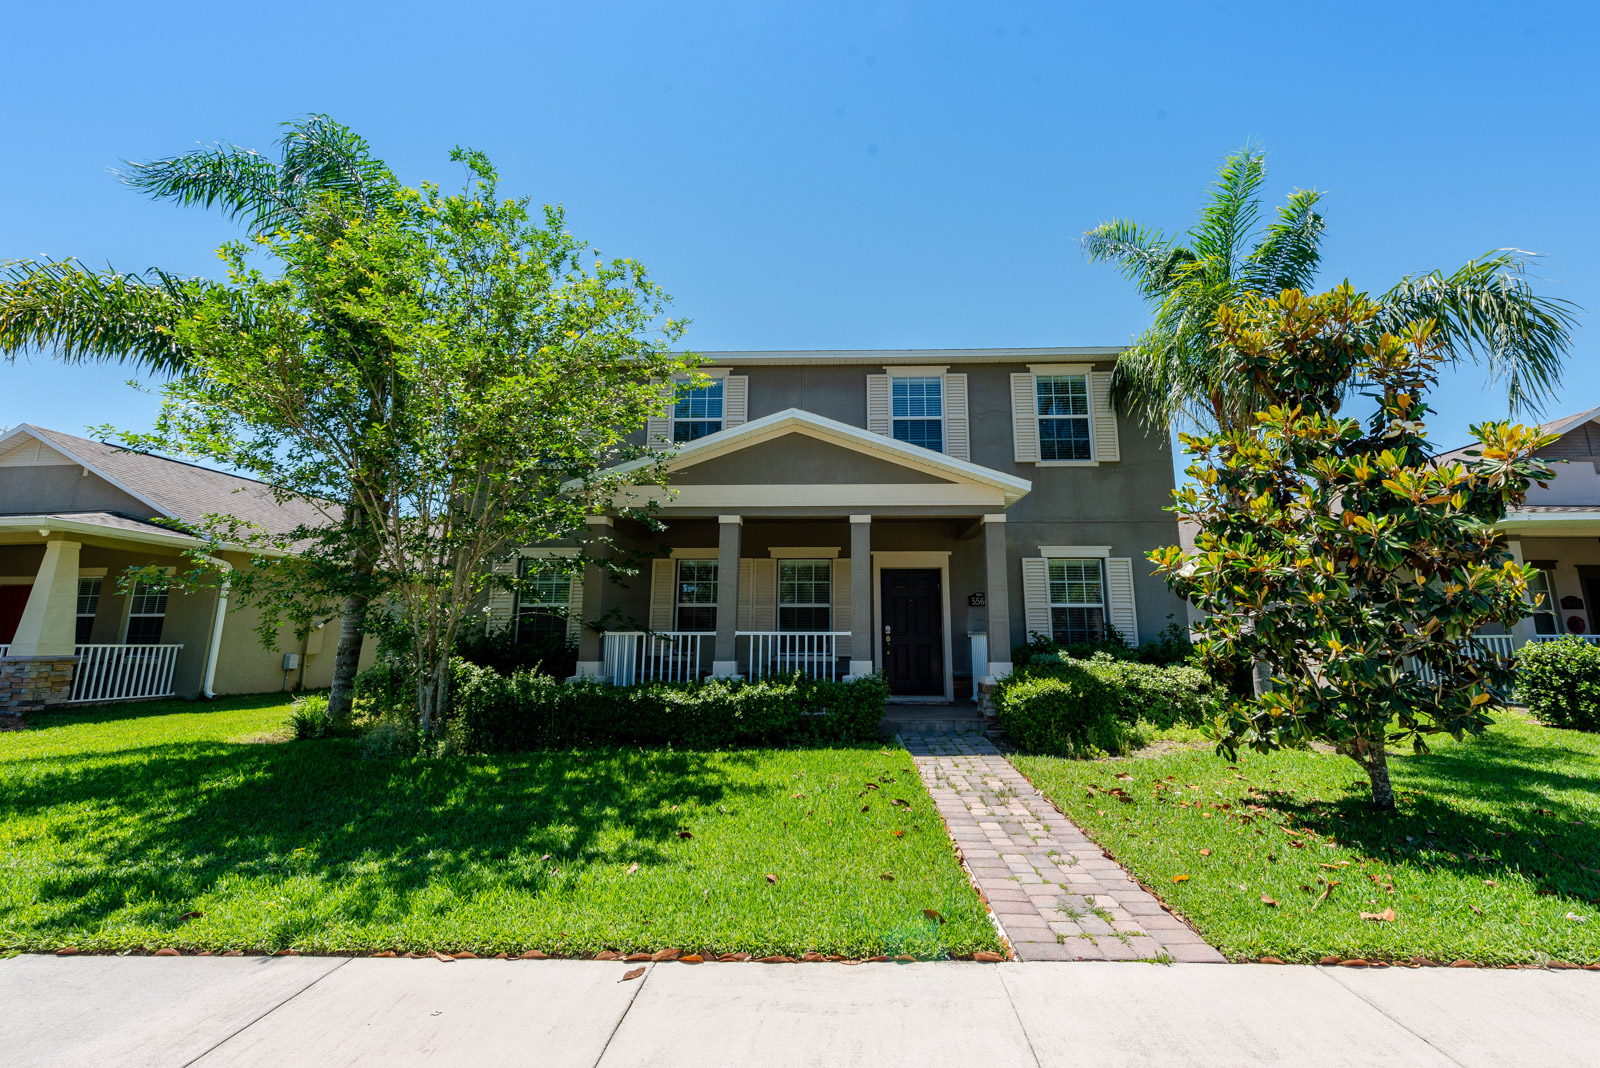 Enjoy breathtaking views of Disney's fireworks without ever leaving home! Live like you're on vacation every day in this move-in ready home showcasing stunning lake views, an extensive paver driveway, a private fully fenced backyard, plus plenty of community amenities. Discover the magic!